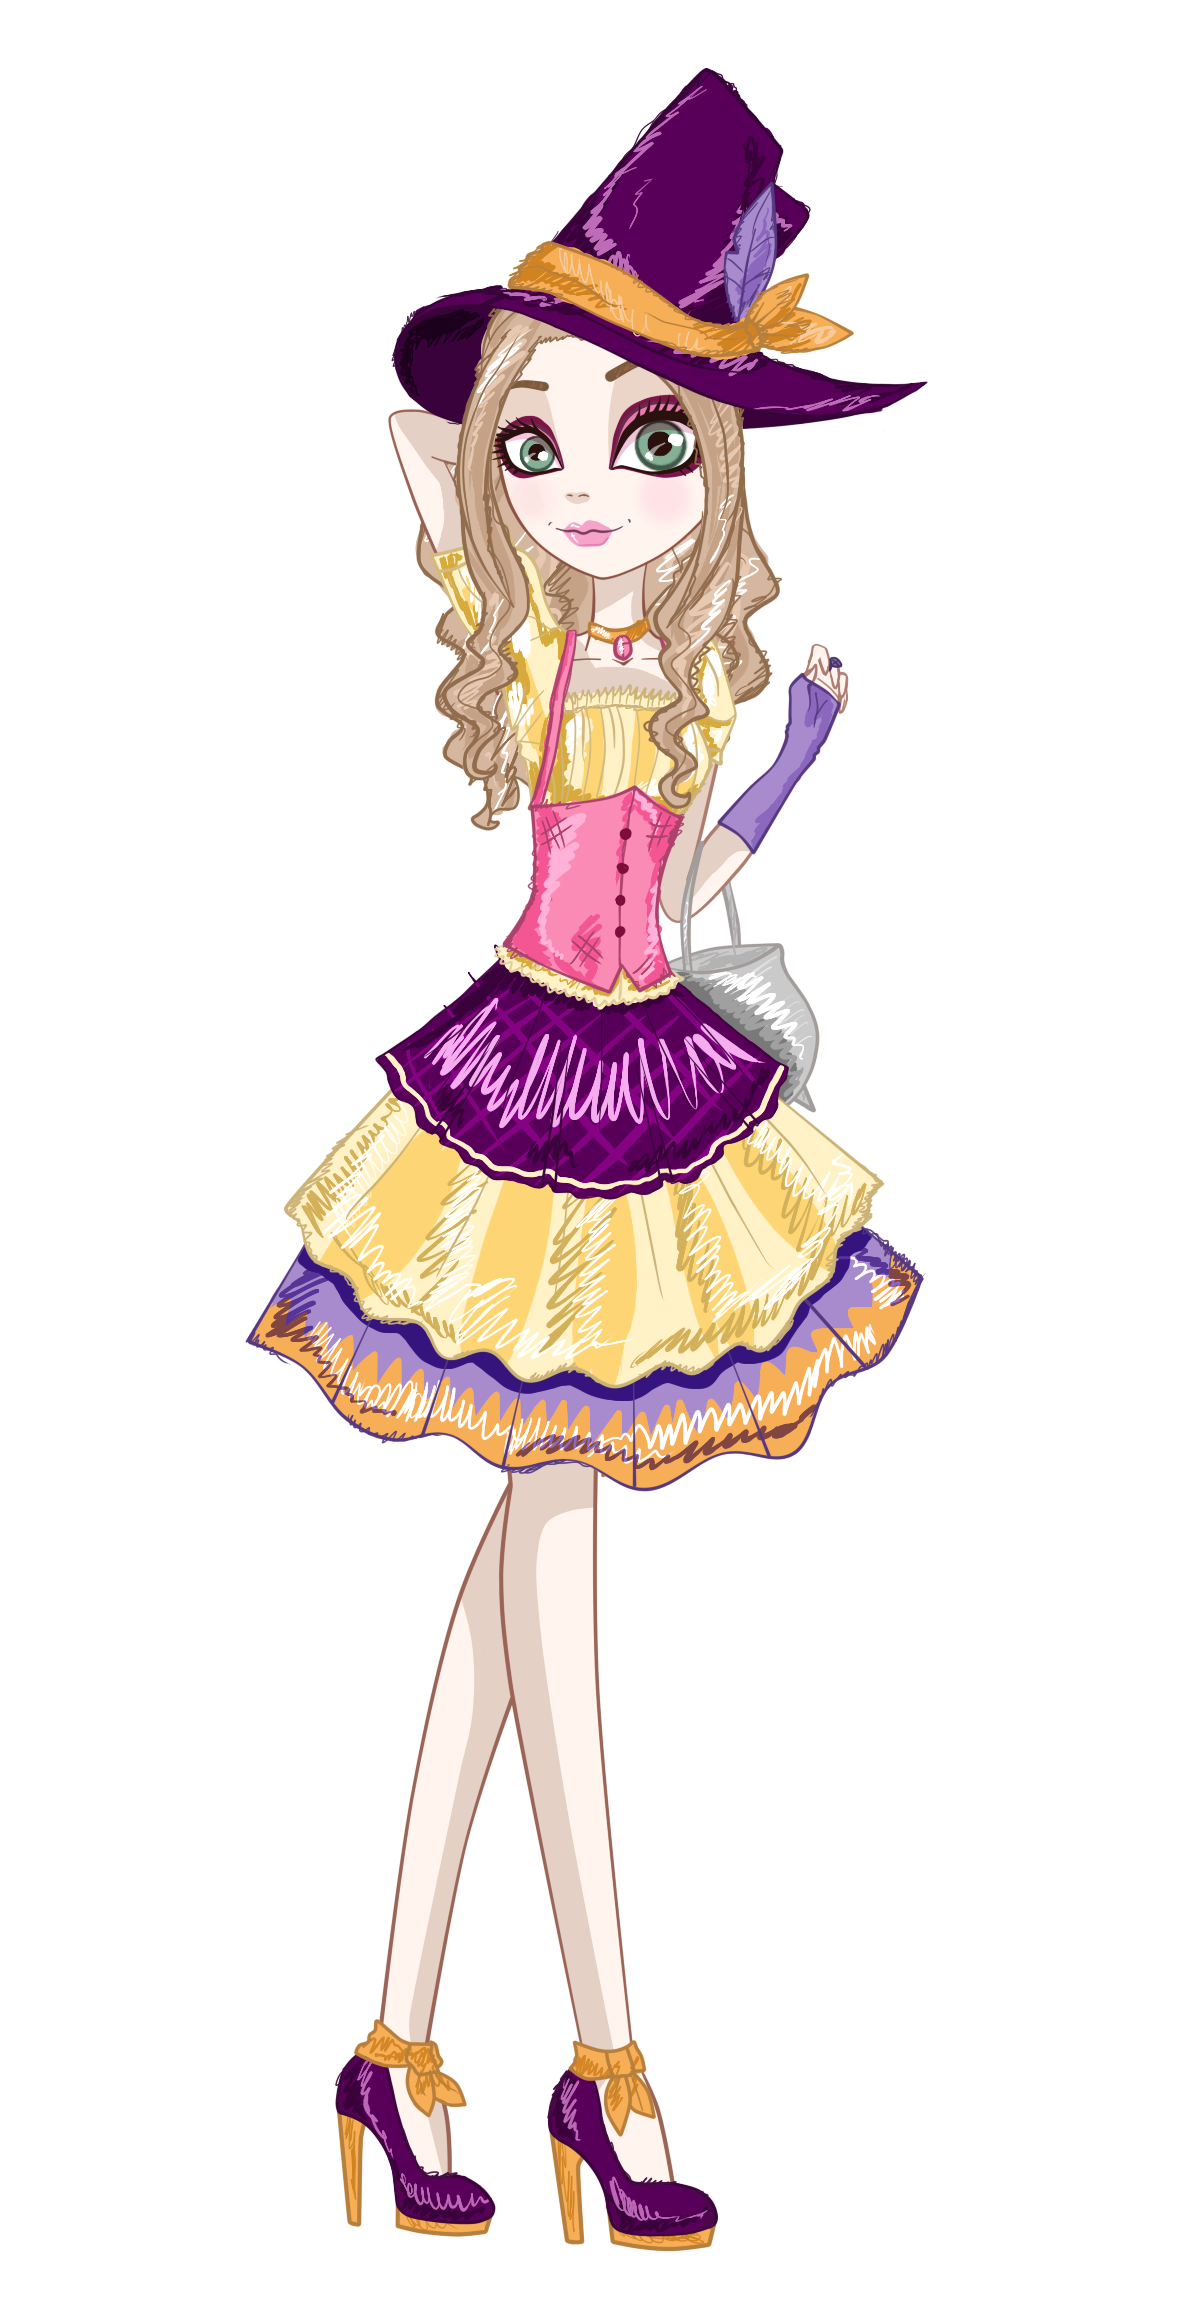 S Daughter After Merlin High Ever Oc